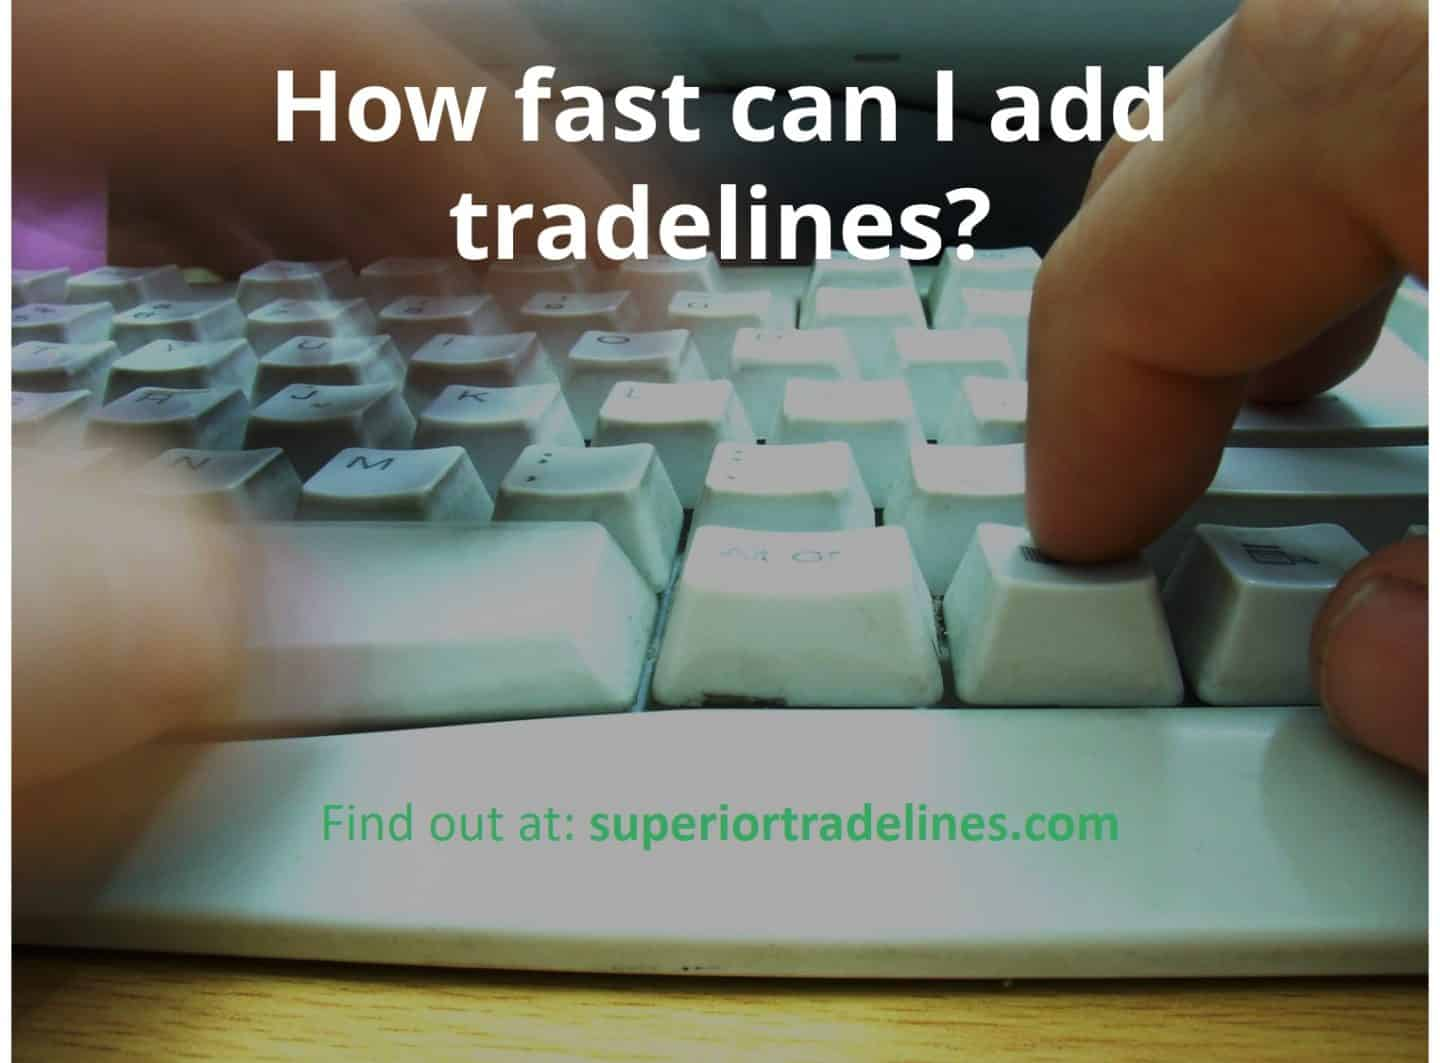 how fast can I add tradelines to my credit report